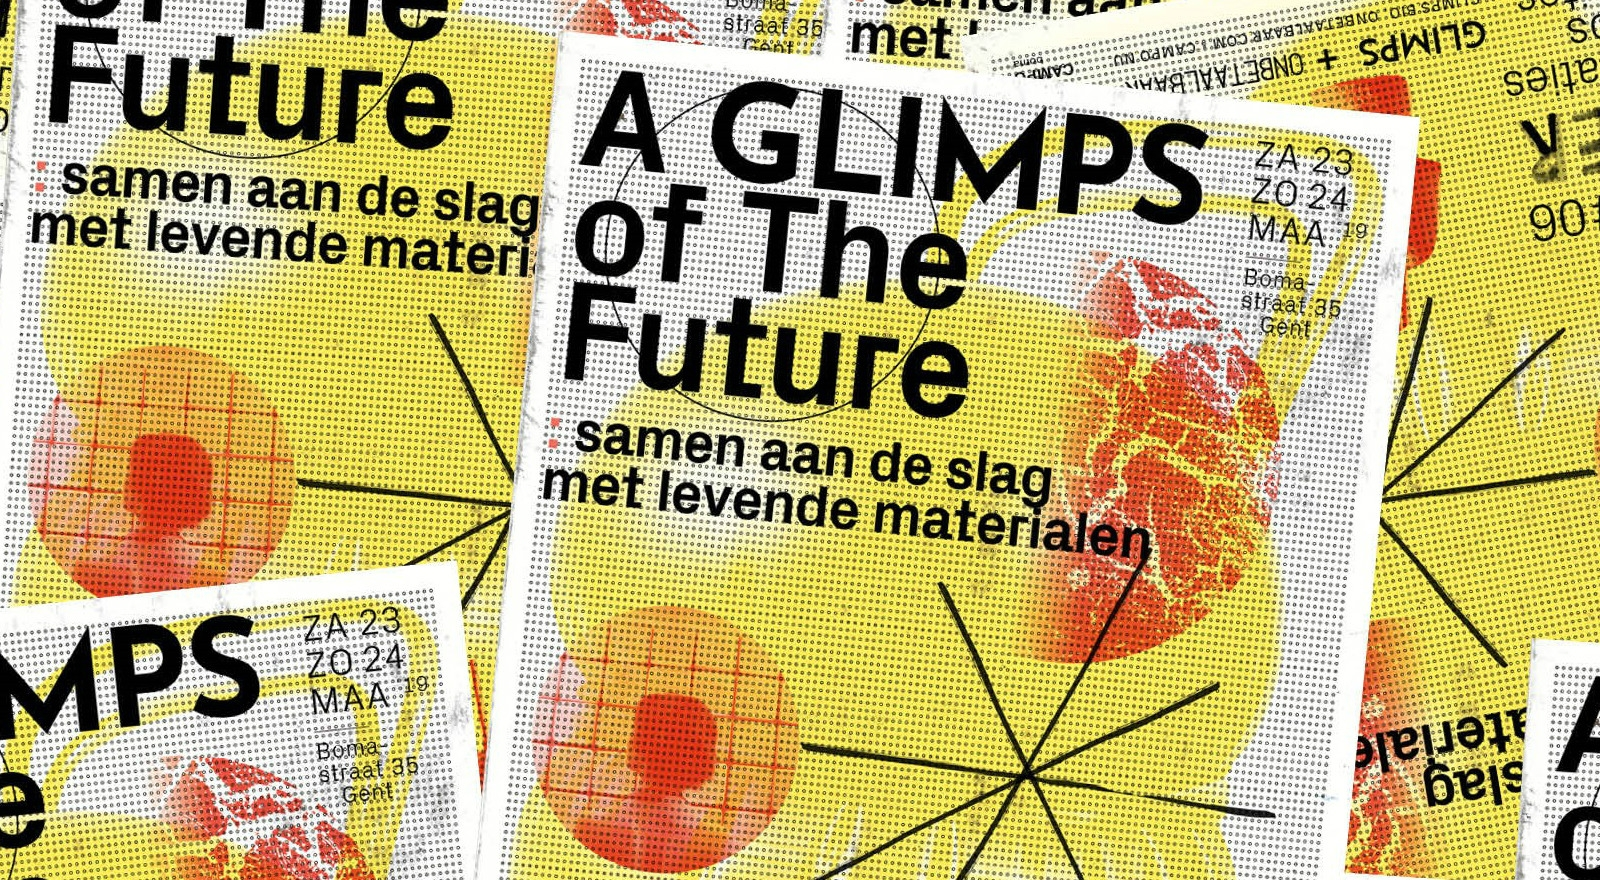 a glimps of the future onbetaalbaar campo boma